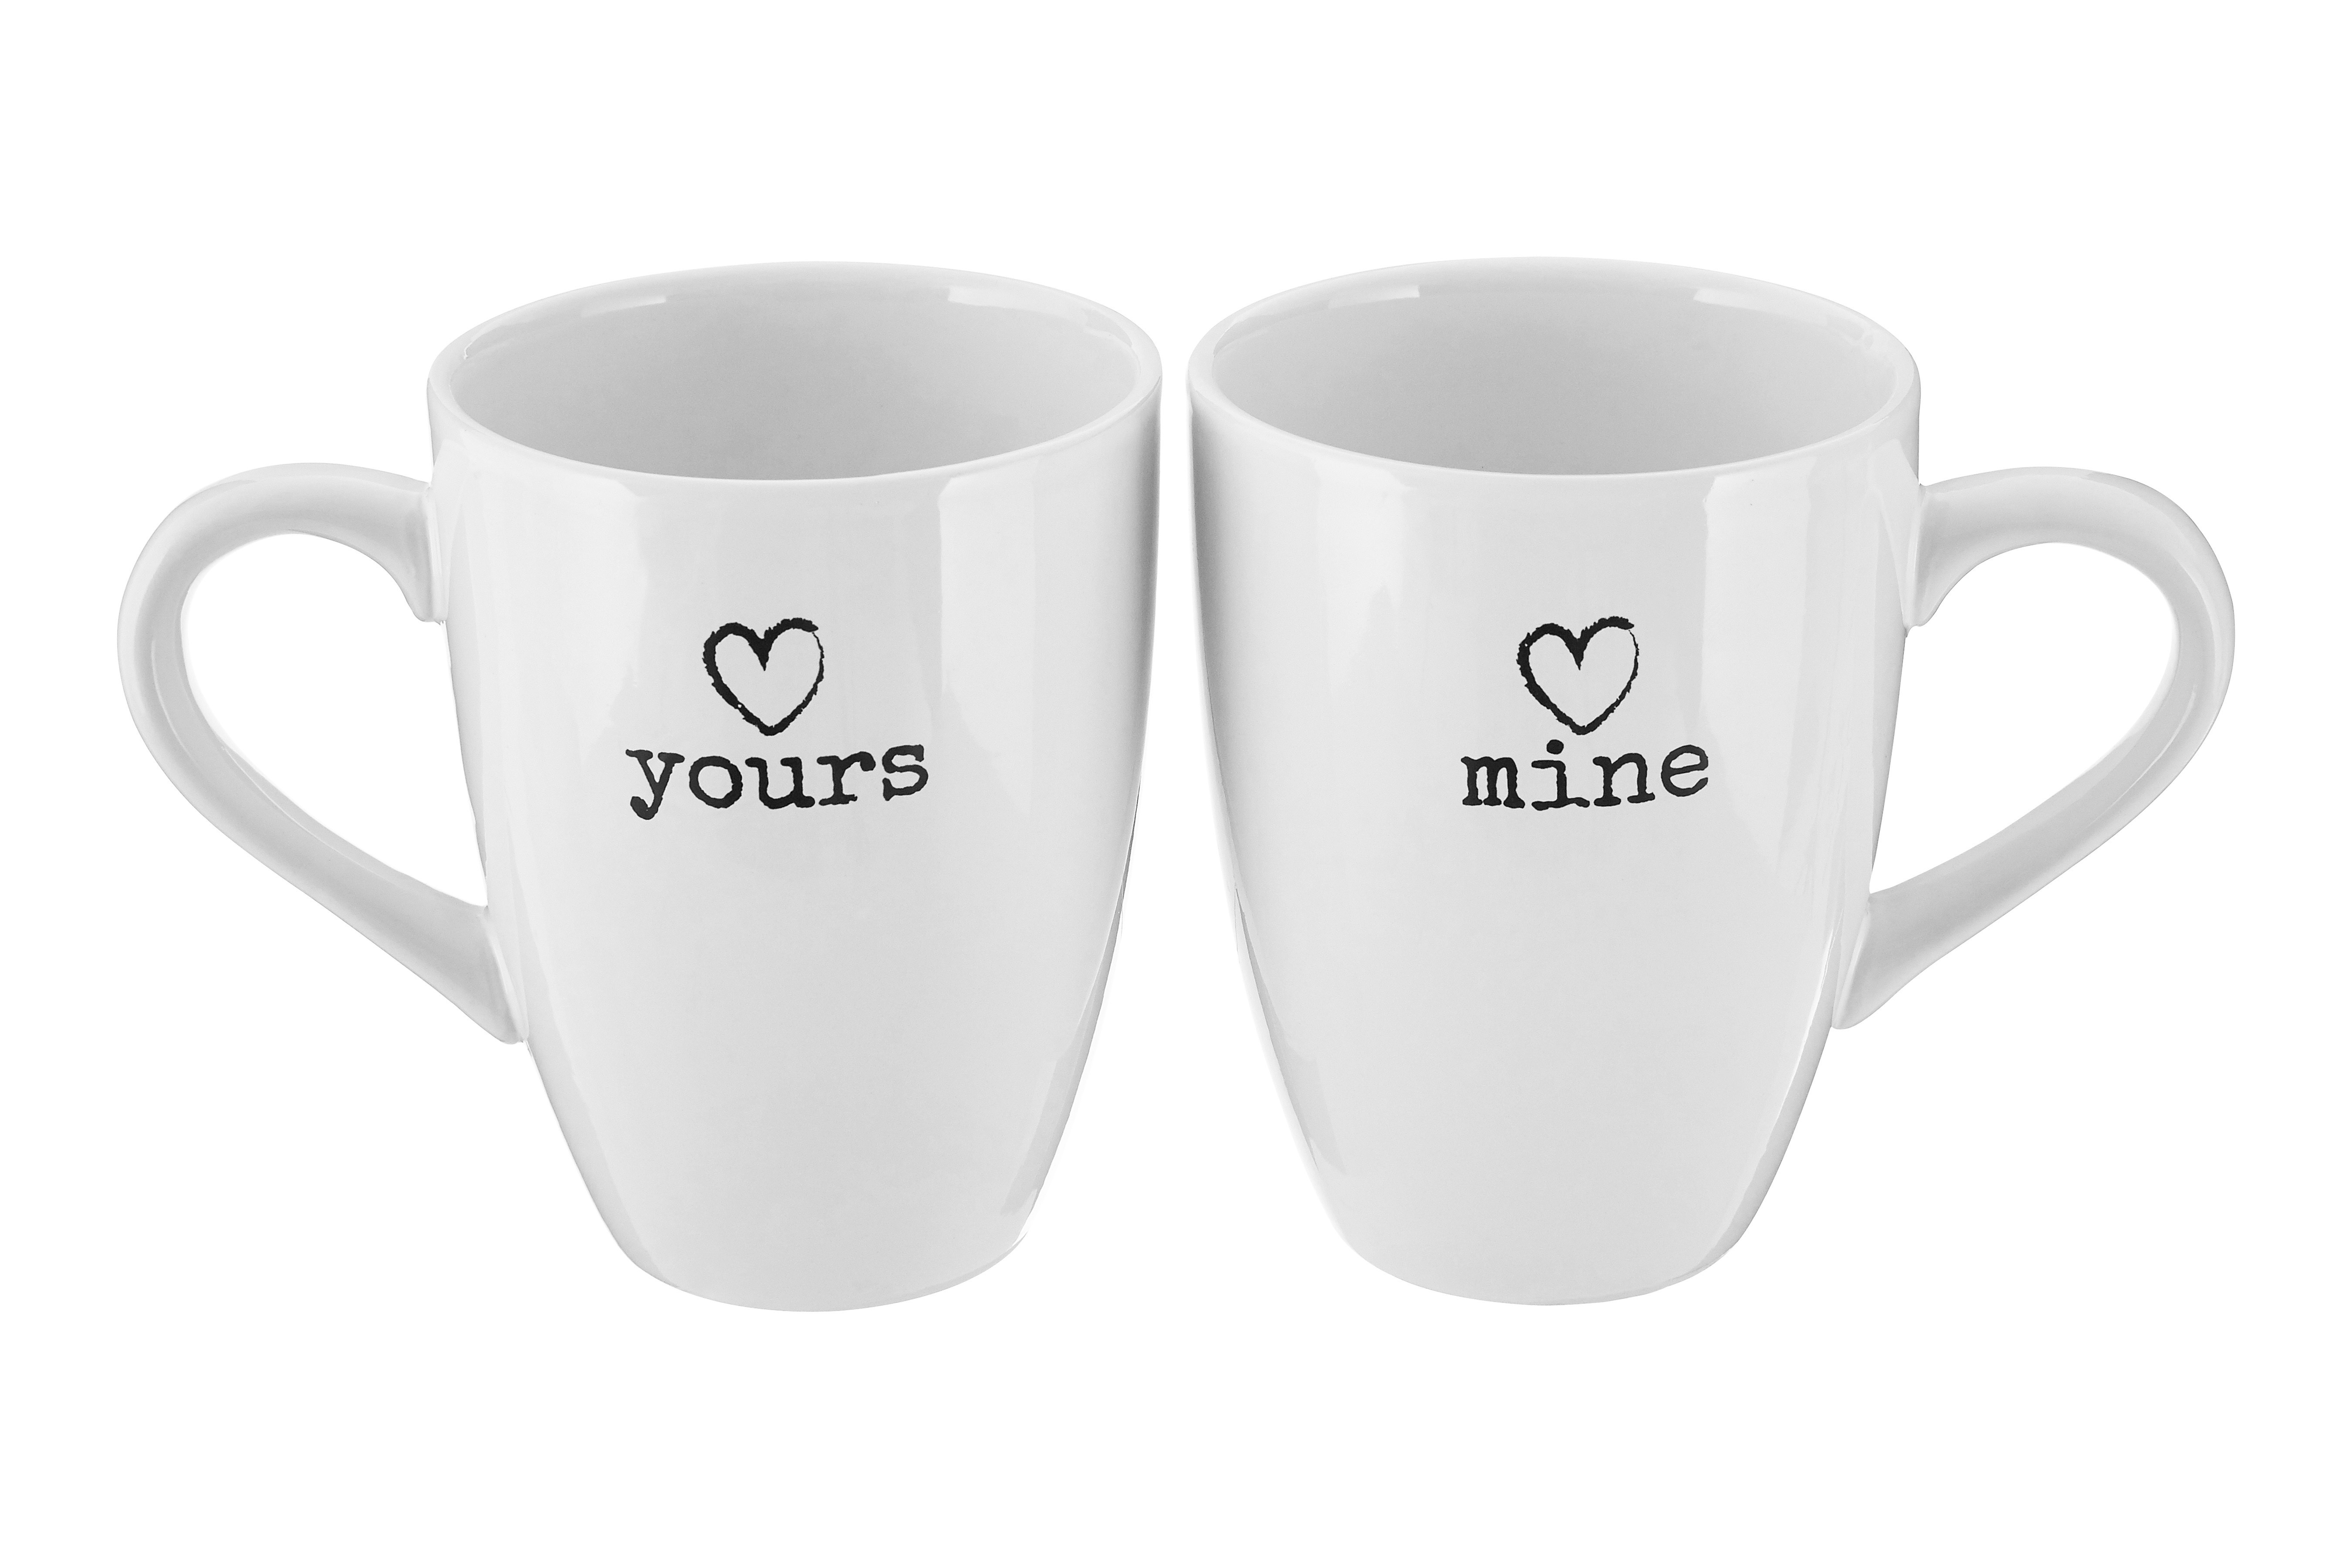 Charm Set of 2 Mugs, White Dolomite